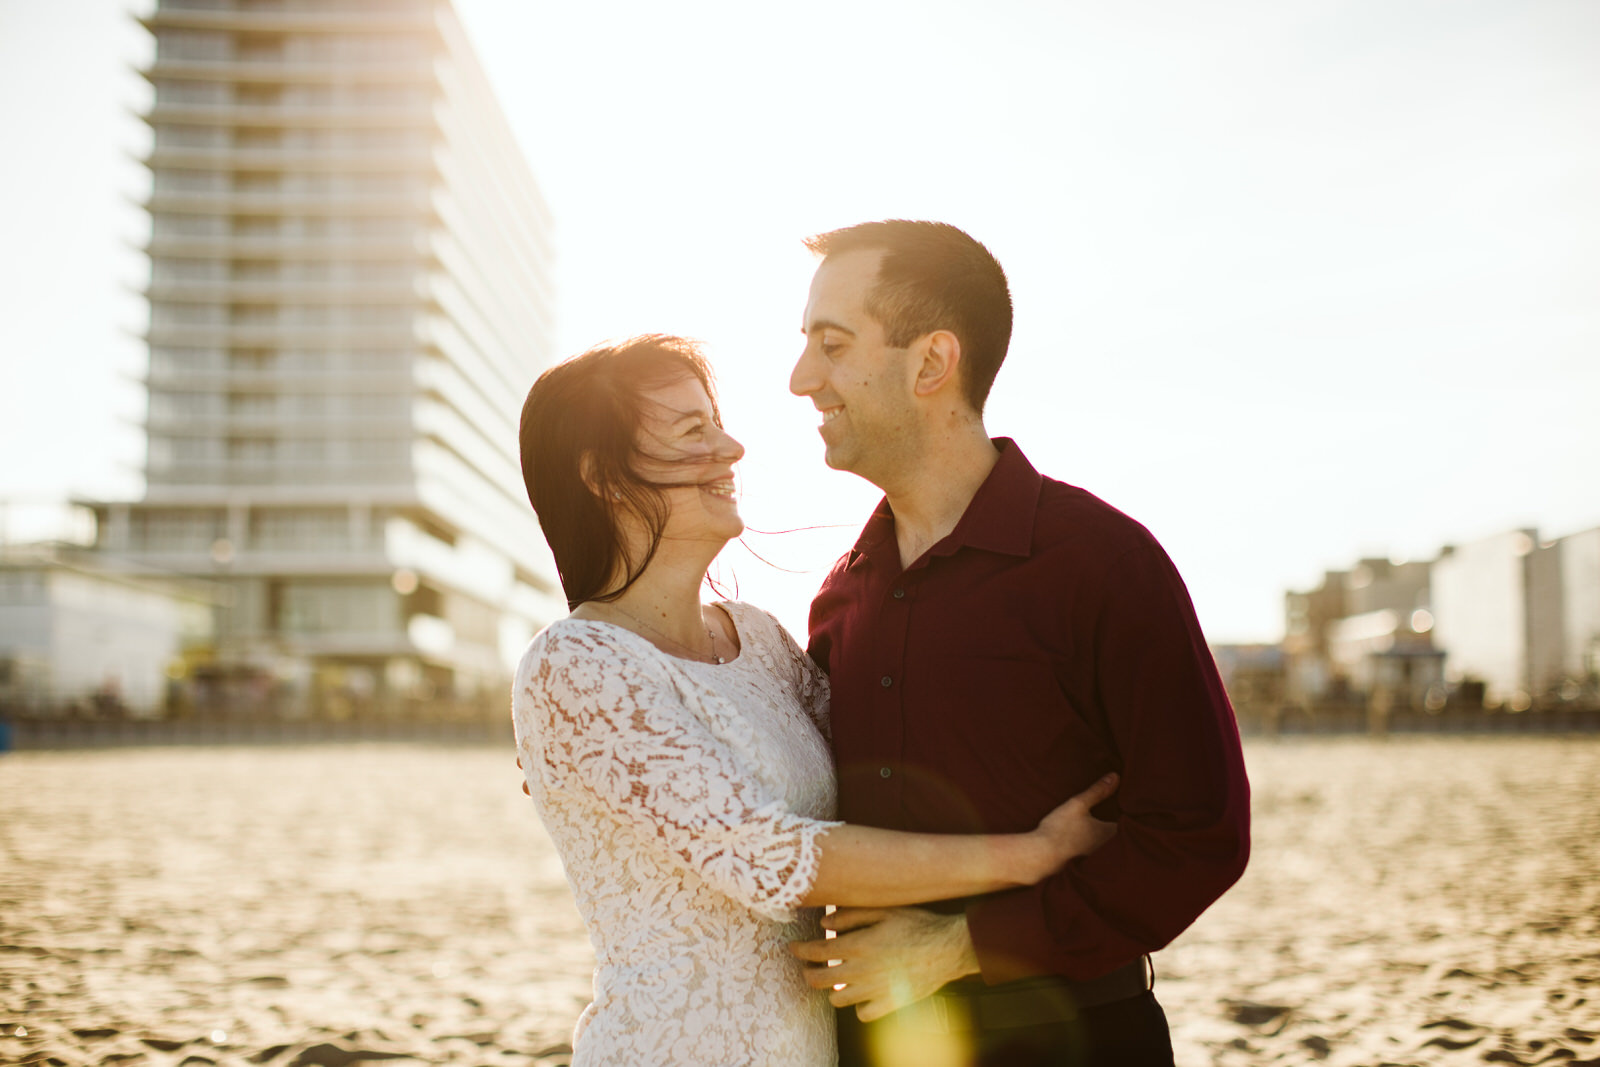 sunset-engagement-portraits-jersey-shore-asbury-park-tiny-house-photo-wedding-photographer-golden-hour-beach.jpg